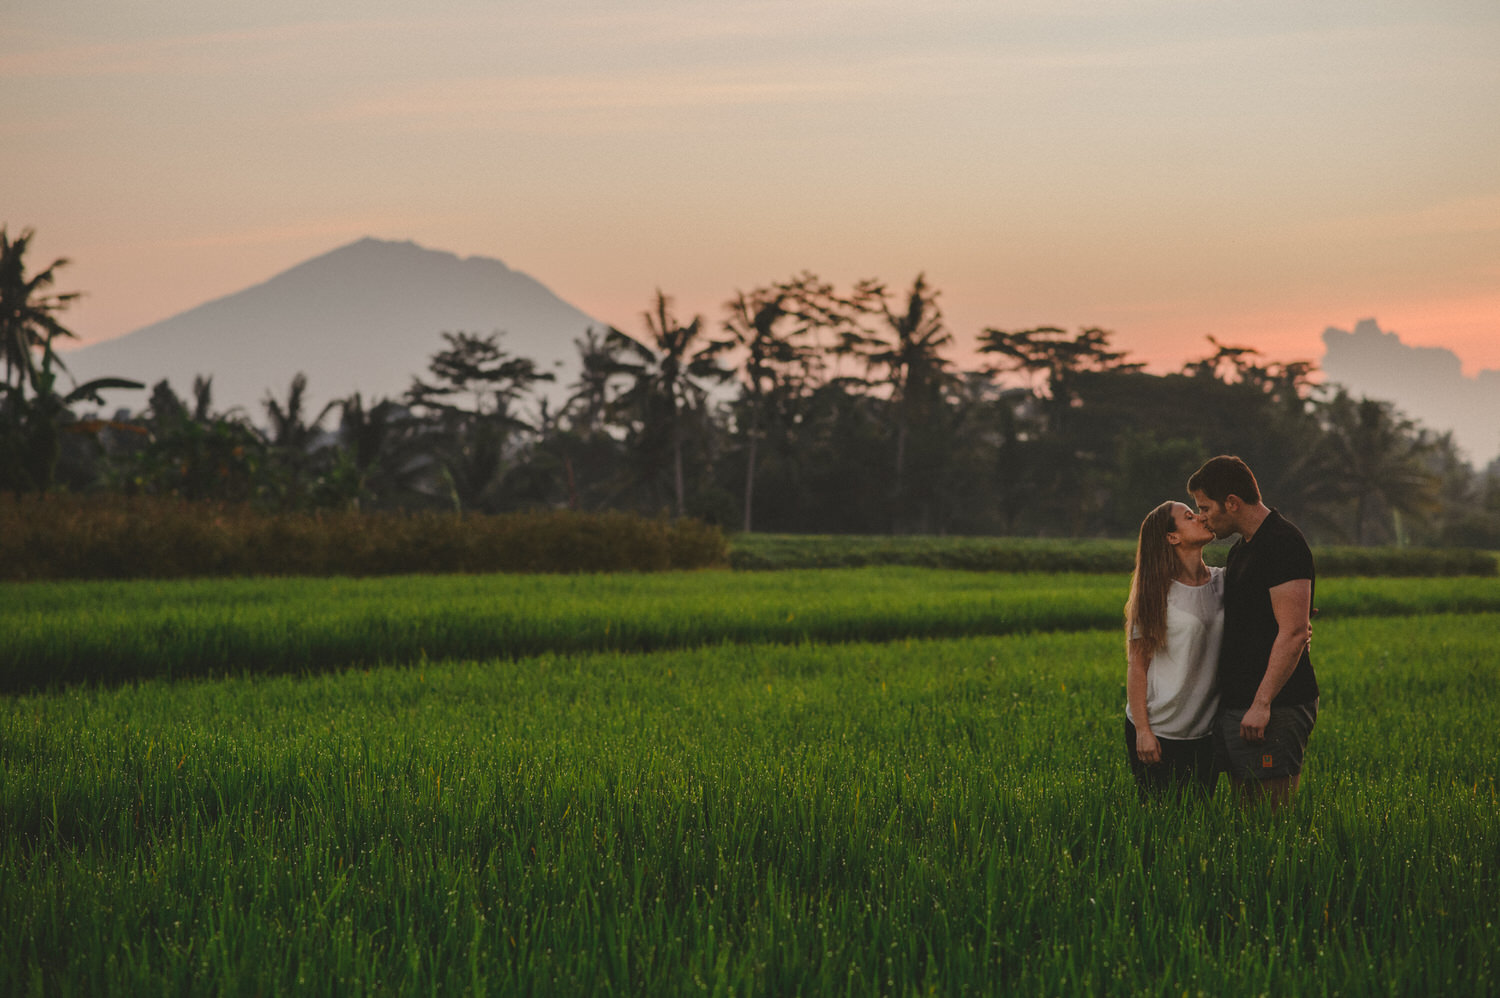 bali-wedding-destination-wedding-in-bali-bali-photographer-pantai-purnama-ubud-wedding-profesional-bali-wedding-photographer-diktatphotography-vania-pedro-5